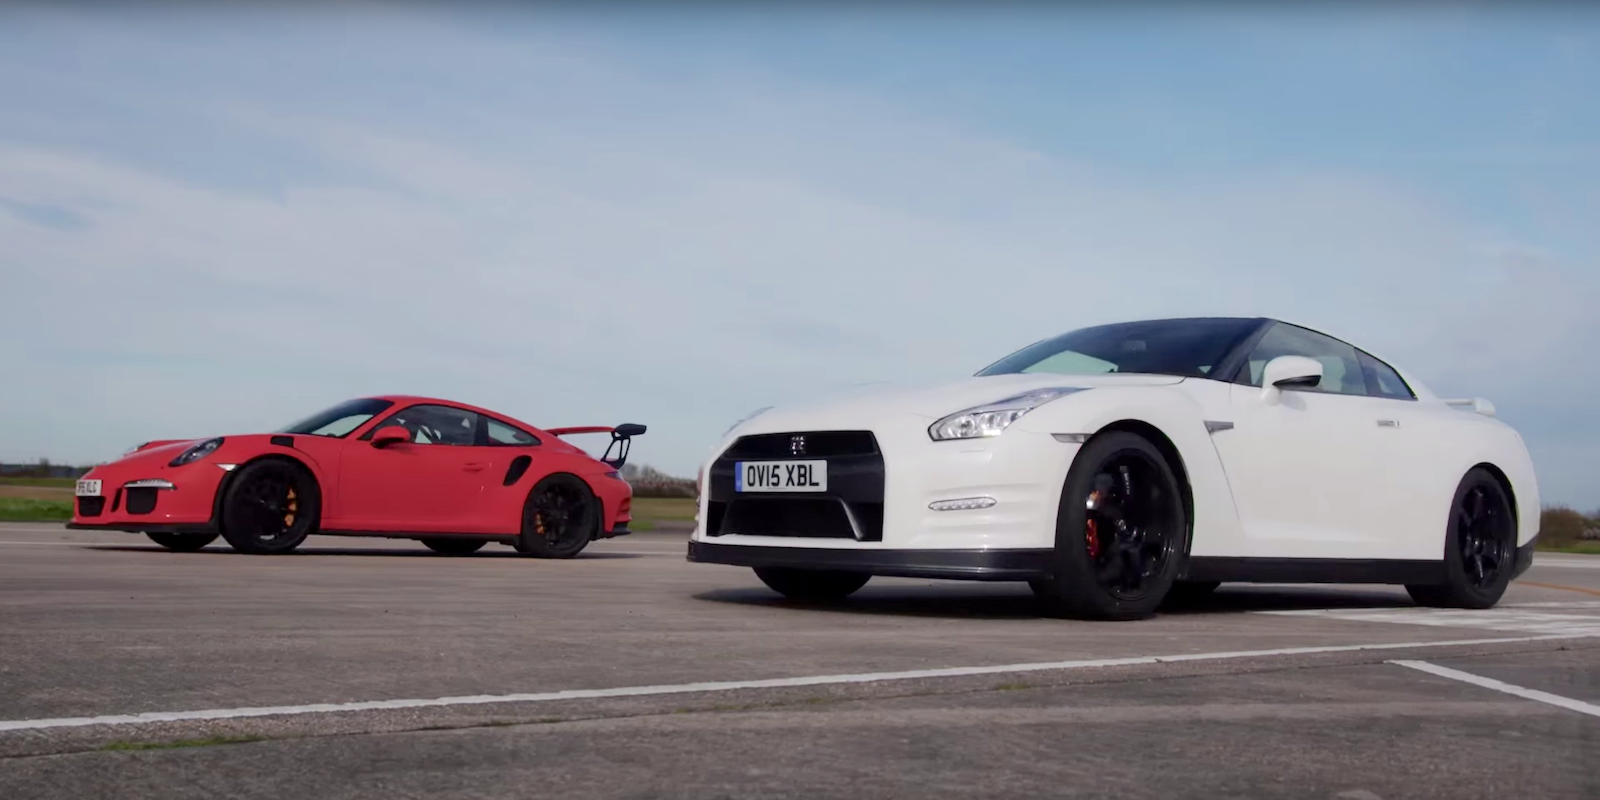 The nissan gt r is no longer the king of acceleration